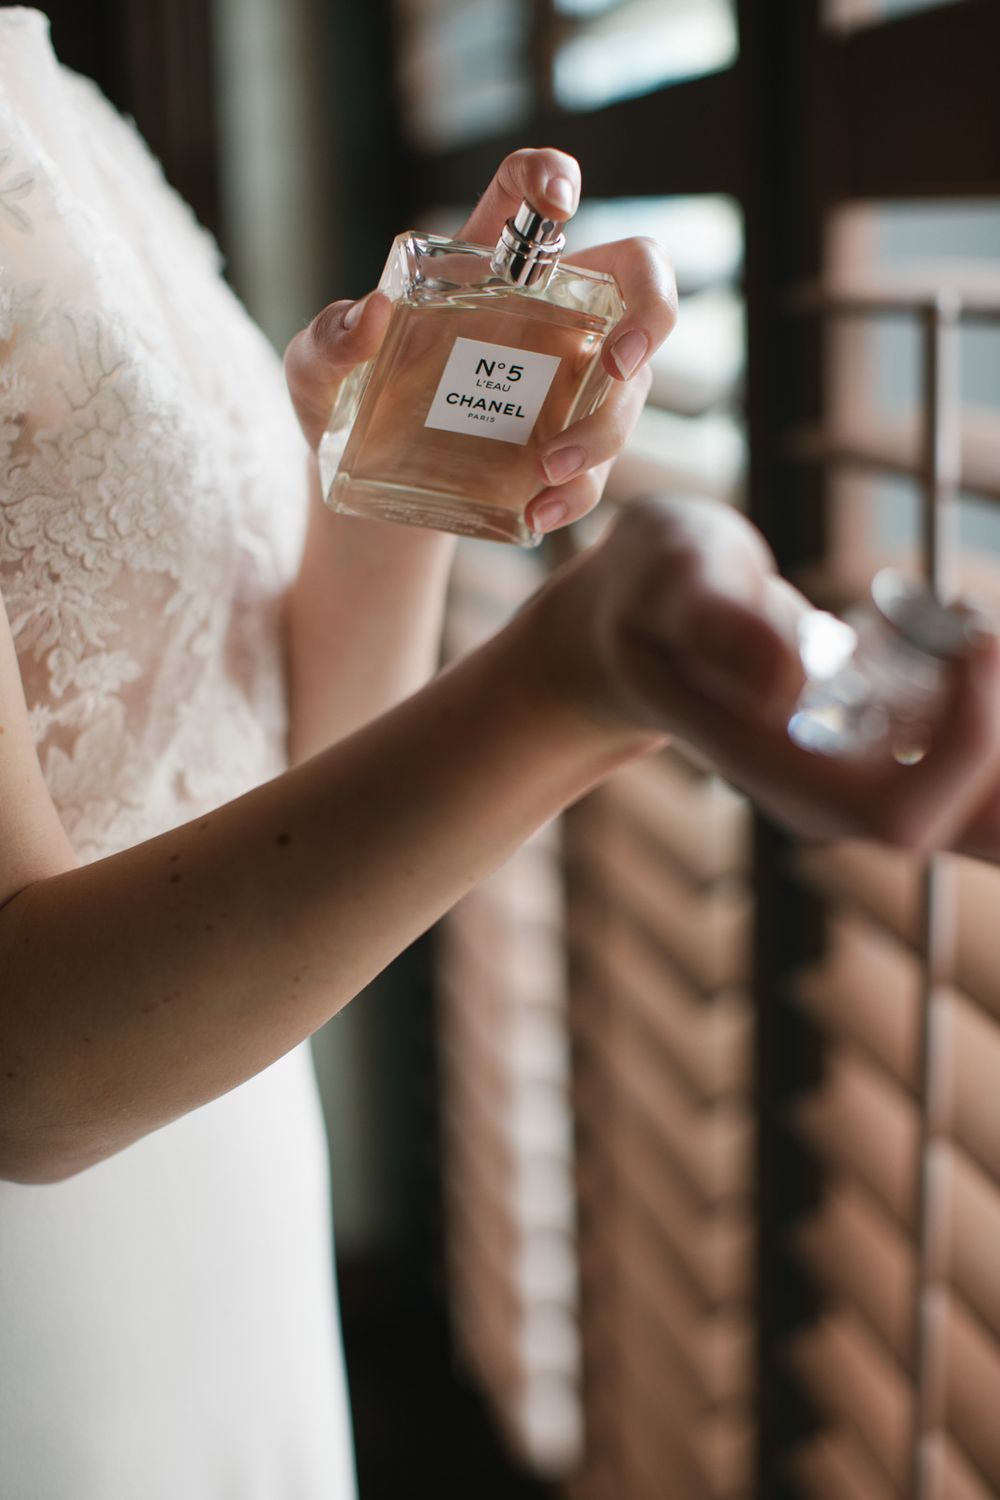 Bridal scent, Chanel No. 5 perfume